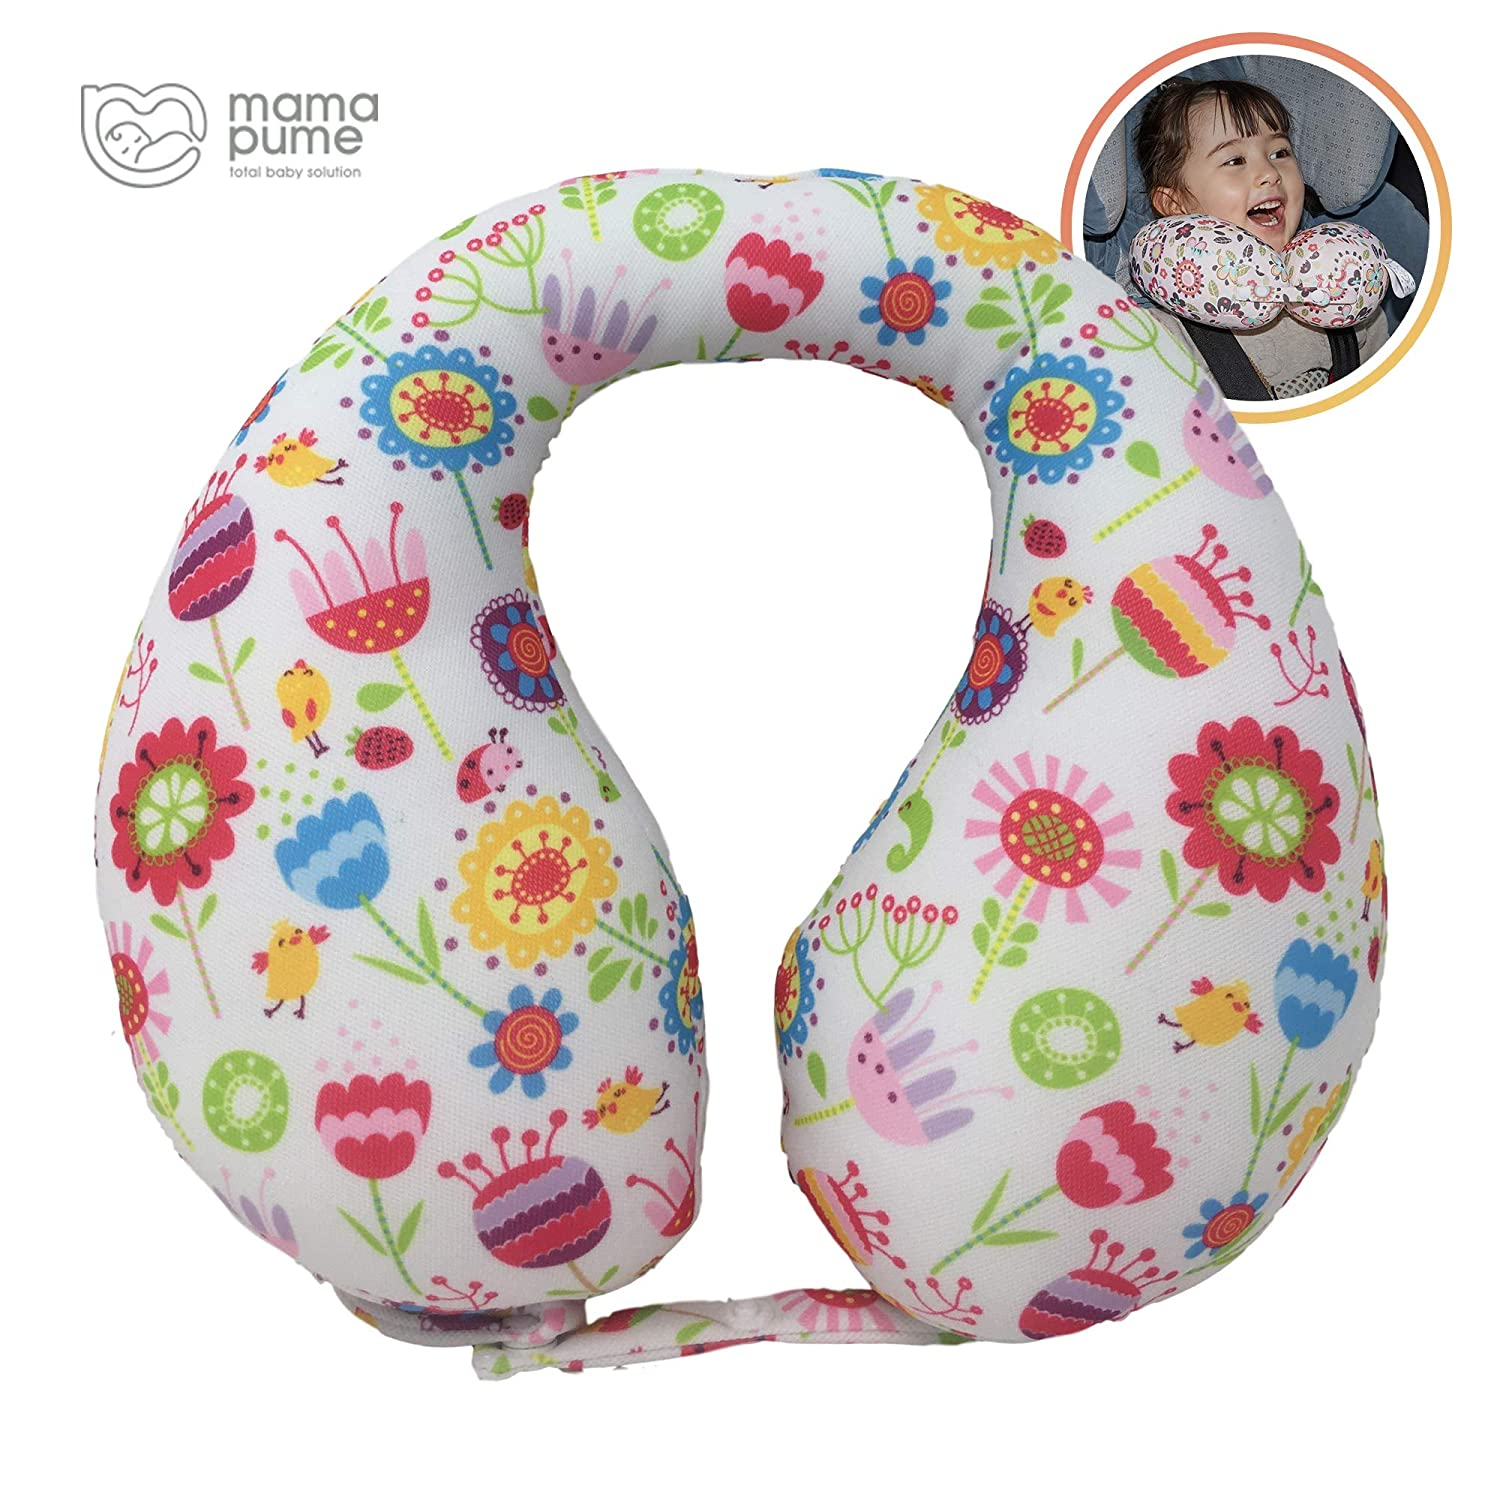 mamapume Infant car seat Head Support Travel Pillow for Kids Toddler Stroller Neck Support Pillows for Airplanes Accessories U Shaped Pillow for 6 Months to 7 Years Old (Spring Garden, M)